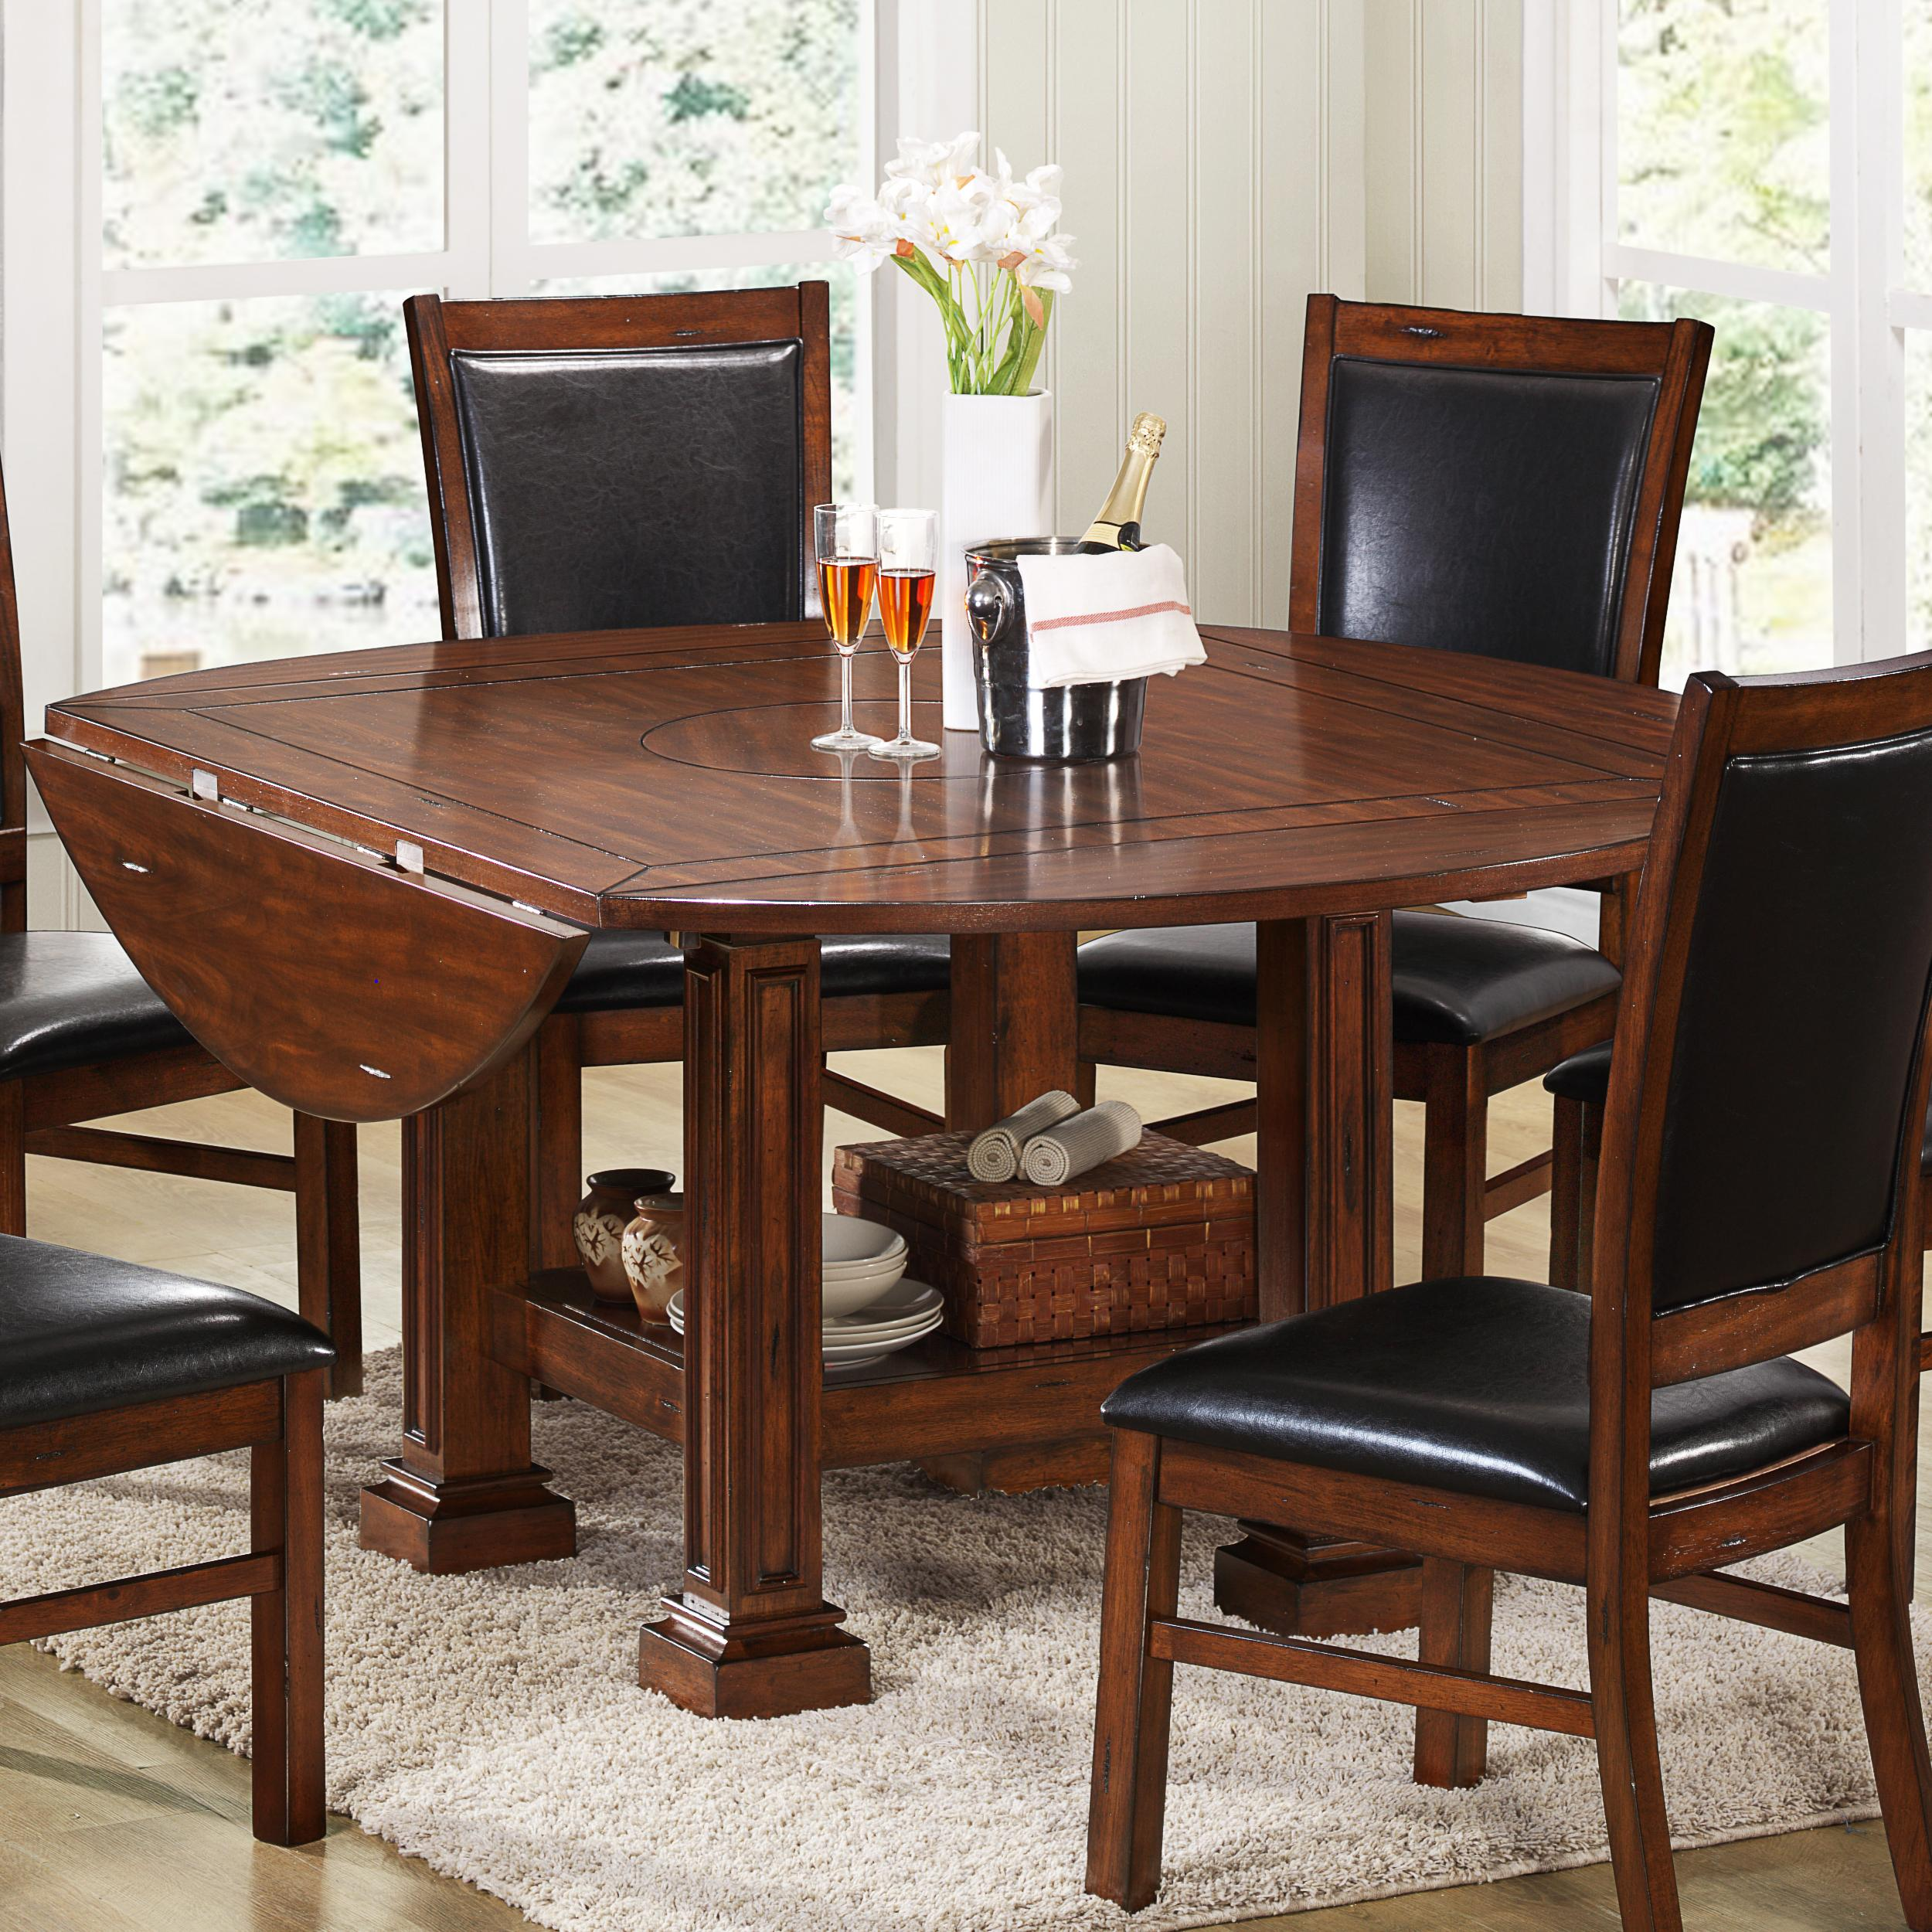 5 Styles Of Drop Leaf Dining Table For Small Spaces